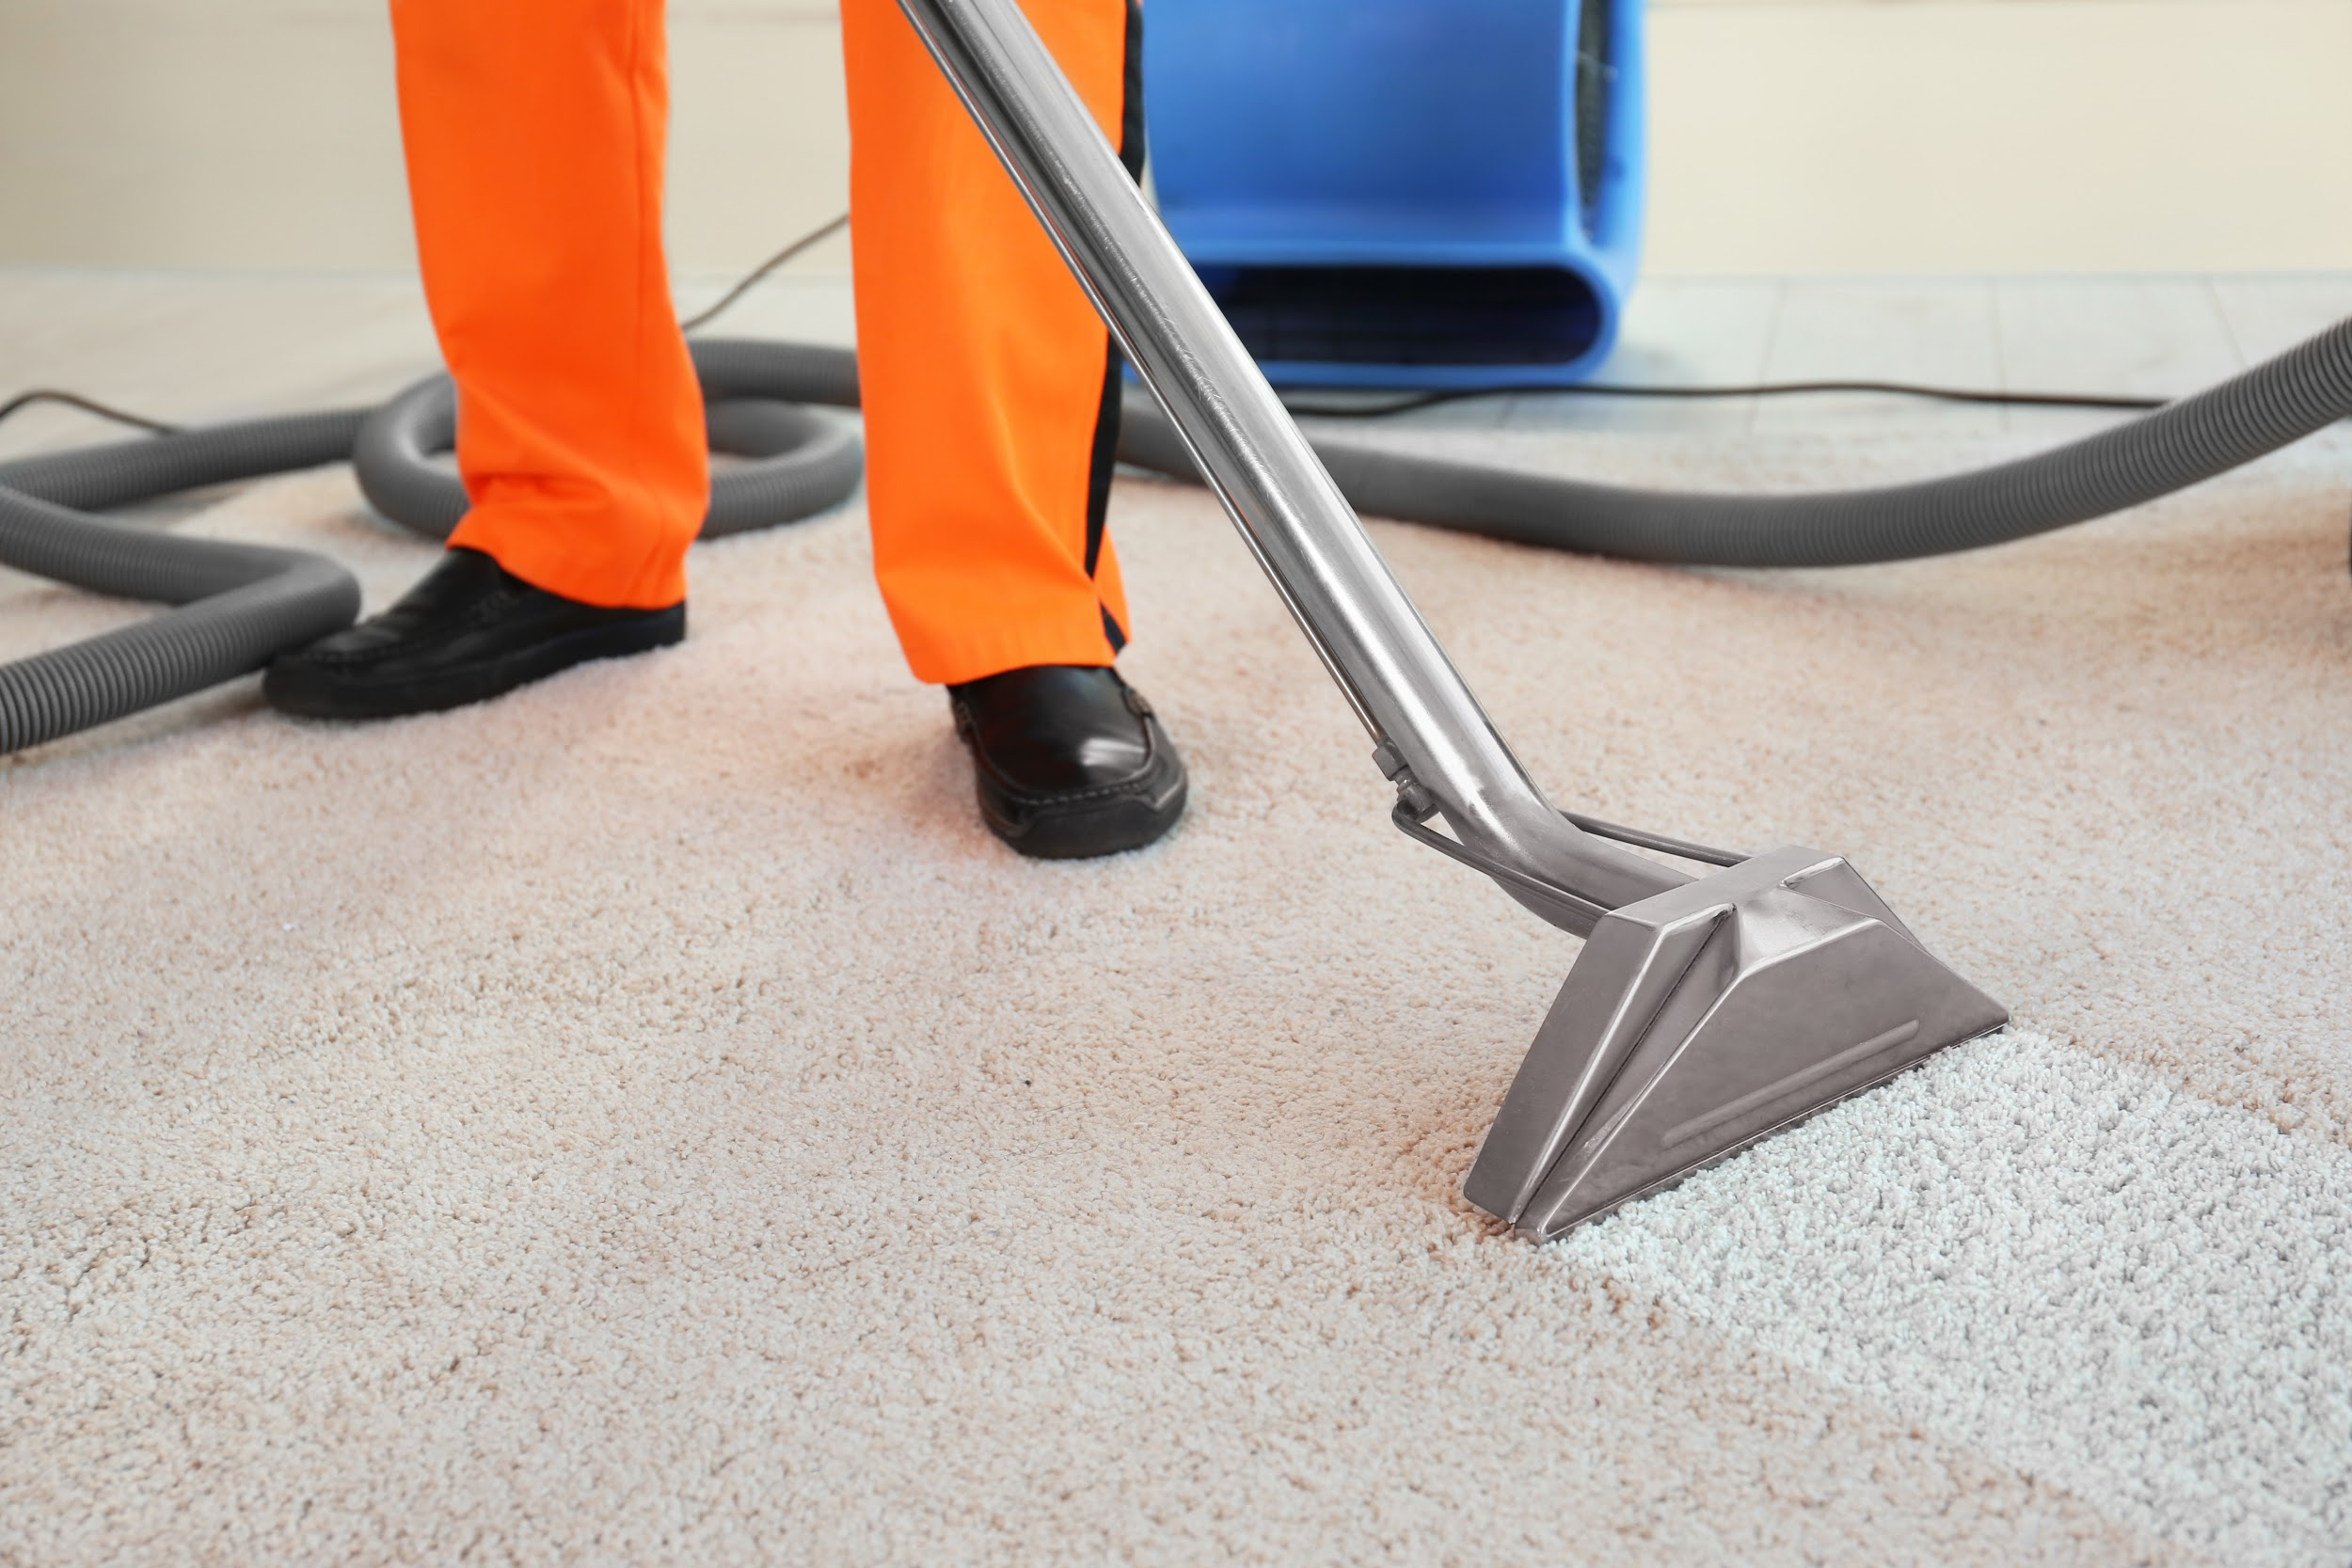 Differences Between Dry Carpet Cleaning and Steam Cleaning